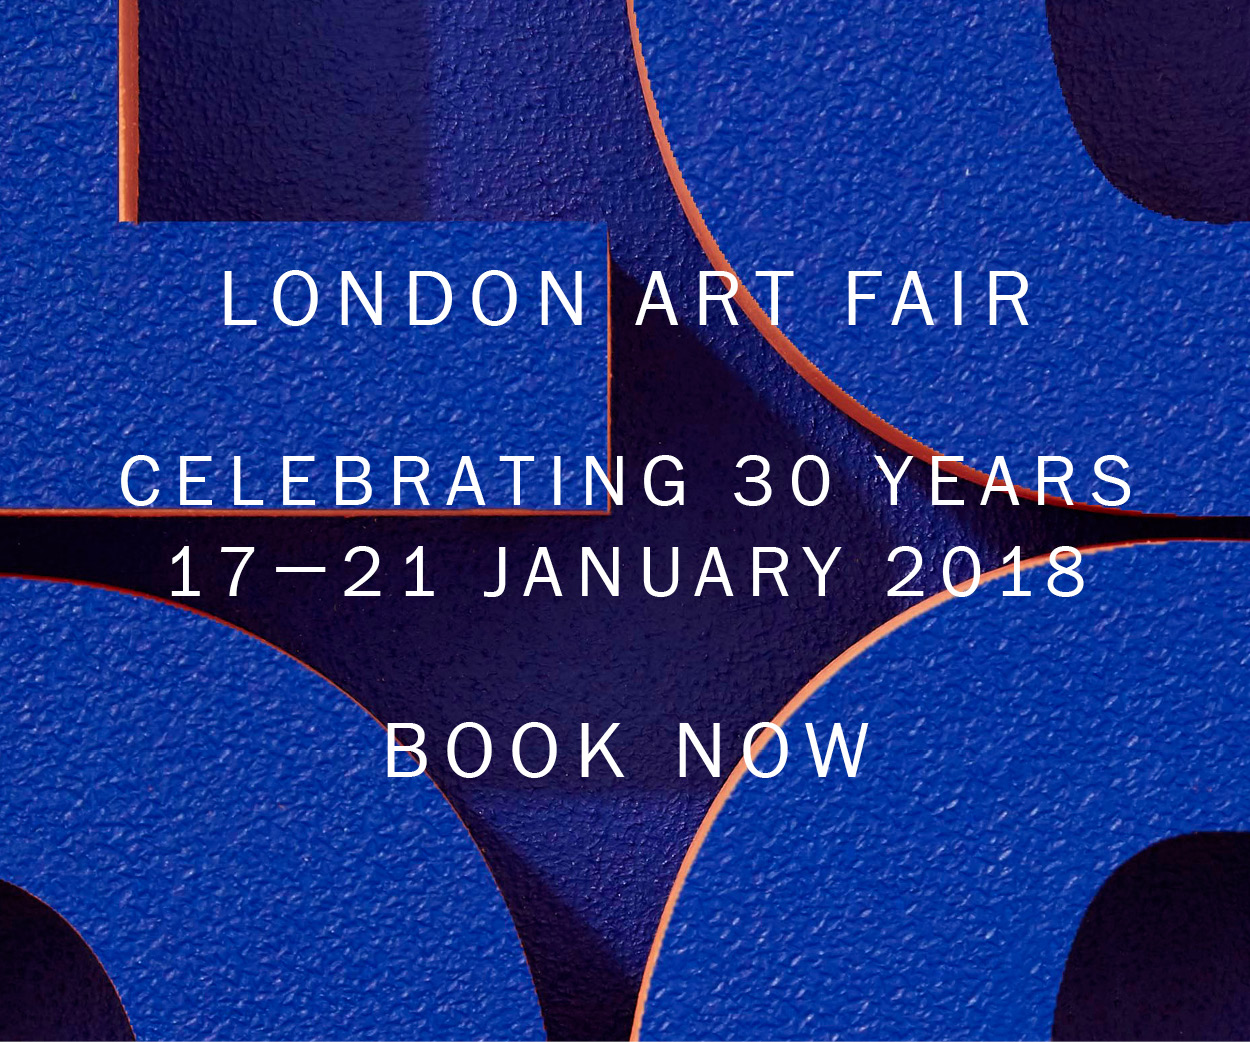 London Art Fair: Celebrating 30 years - 17-21 January 2017 - Book Now